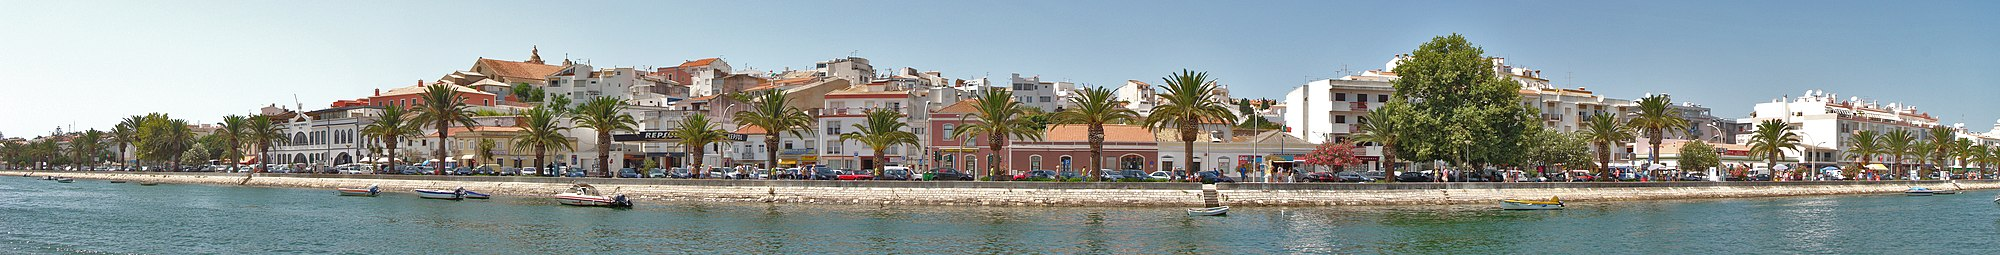 Lagos (Portugal) Resource | Learn About, Share and Discuss Lagos